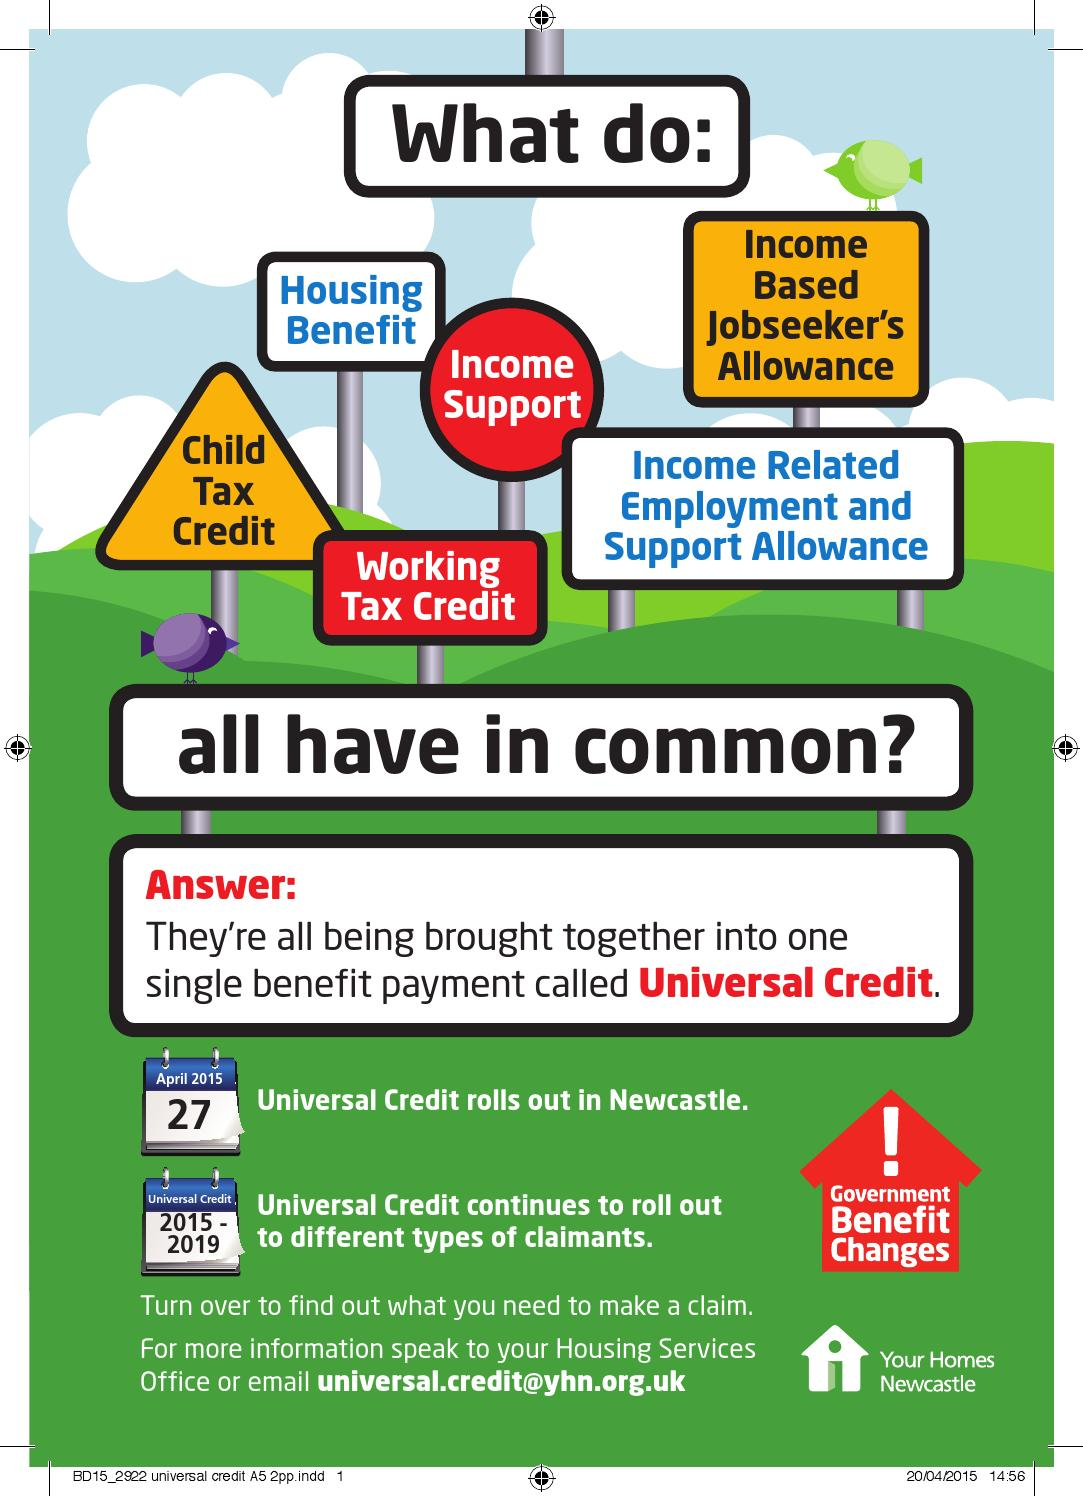 What You Need To Claim Universal Credit By Your Homes